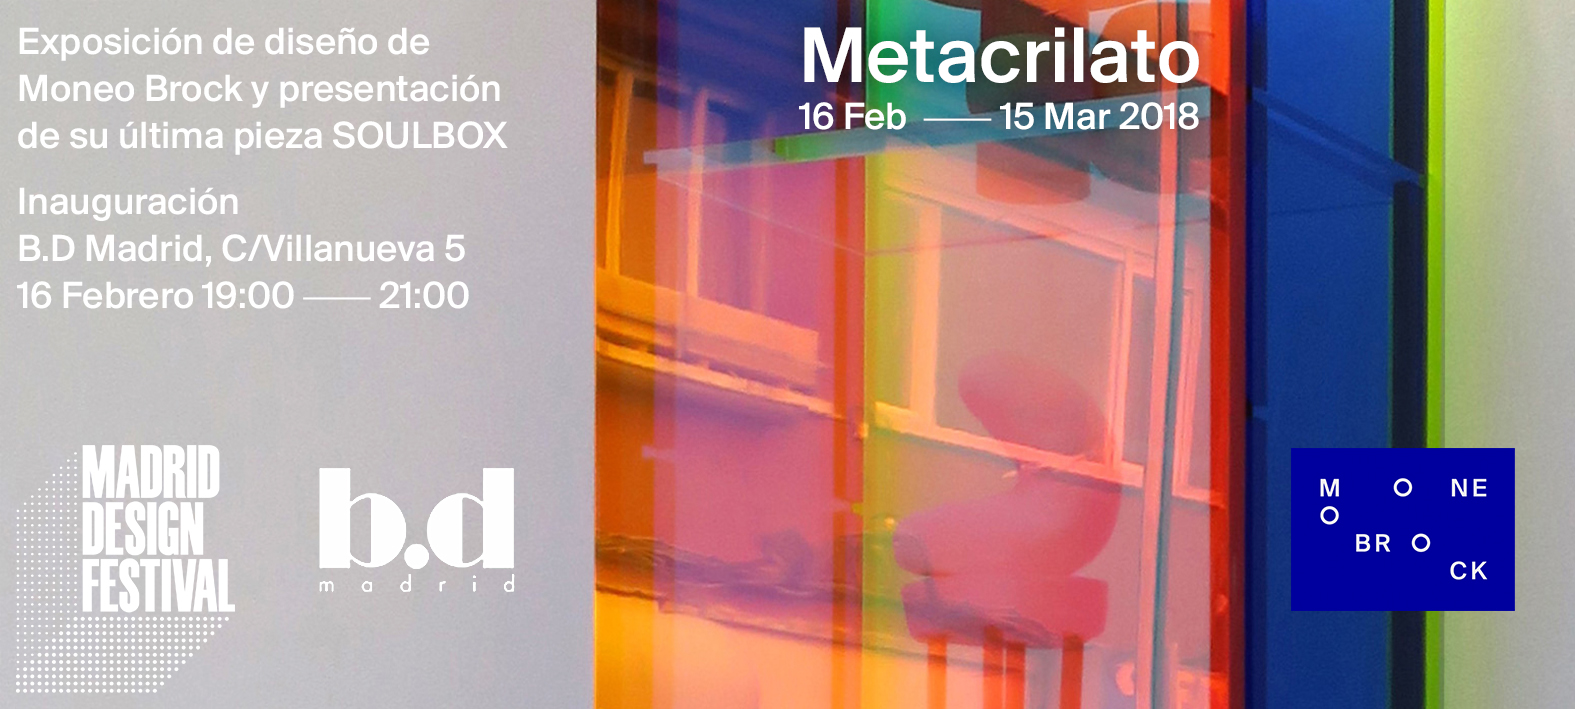 'Metacrilato' Design Exhibition in B.D Madrid